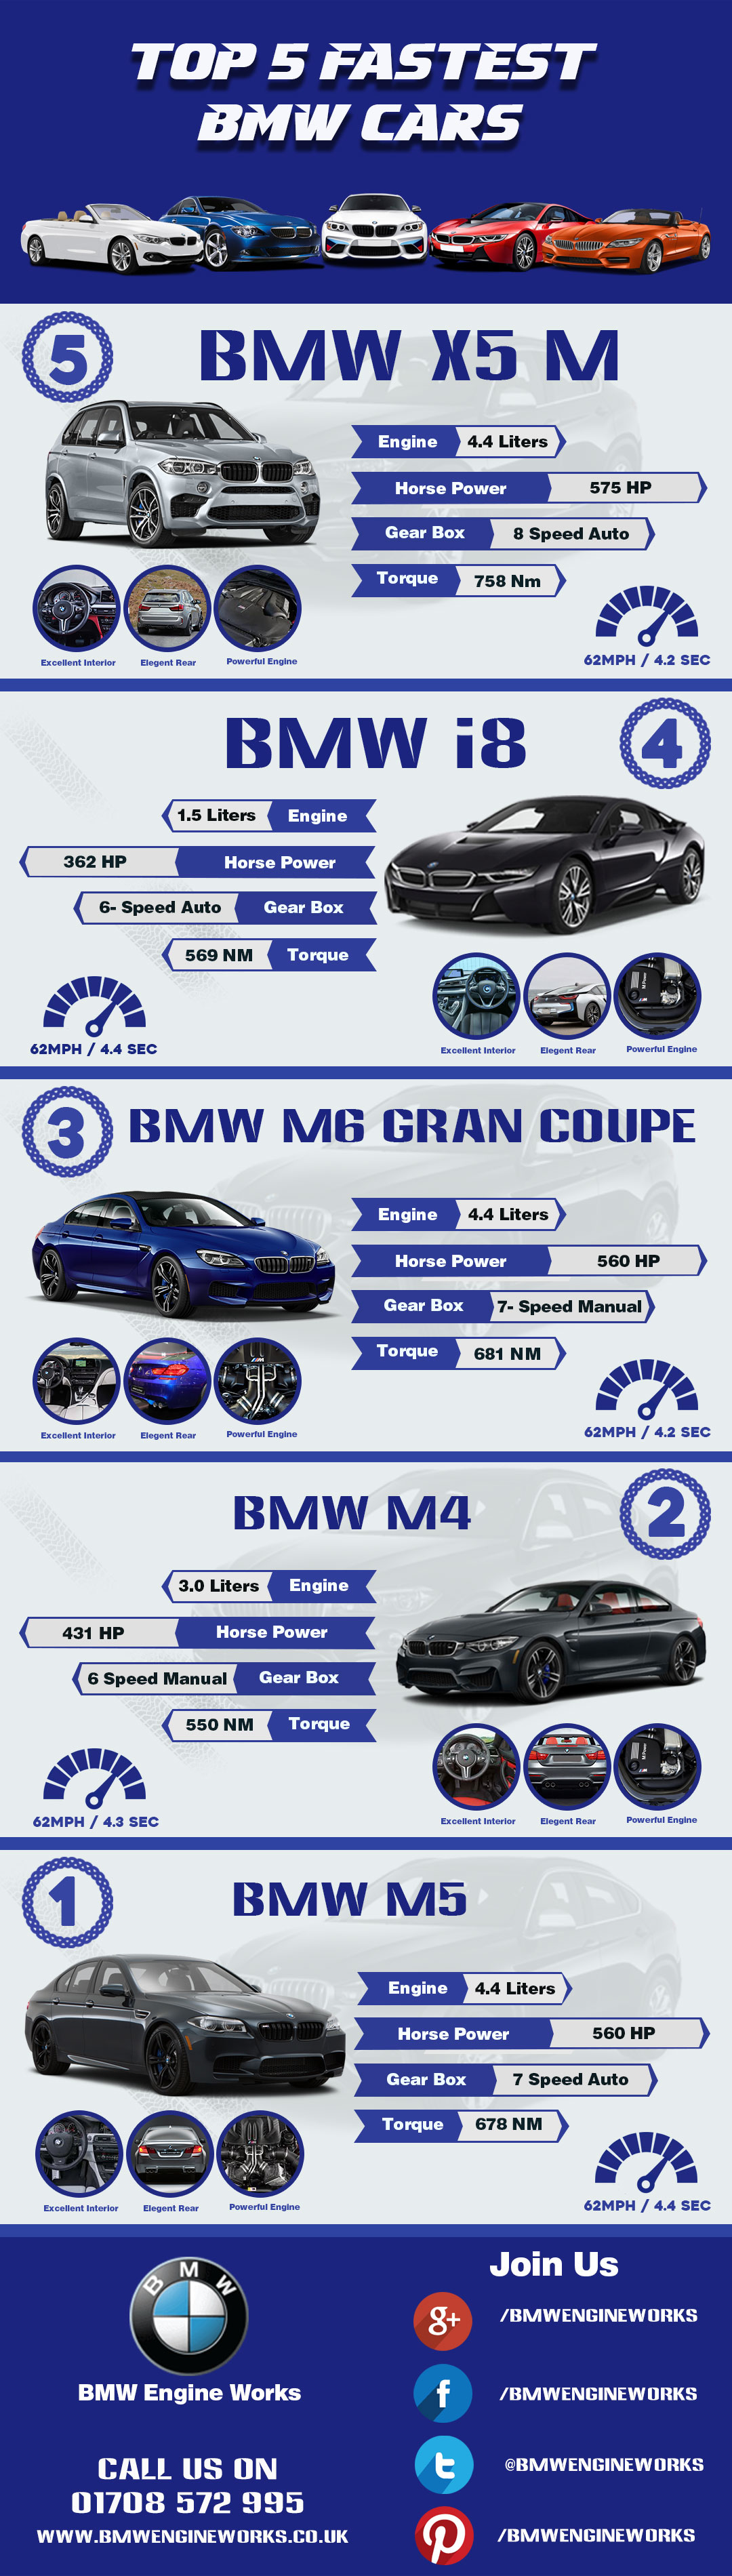 The Quickest 5 BMW Cars Of 2017